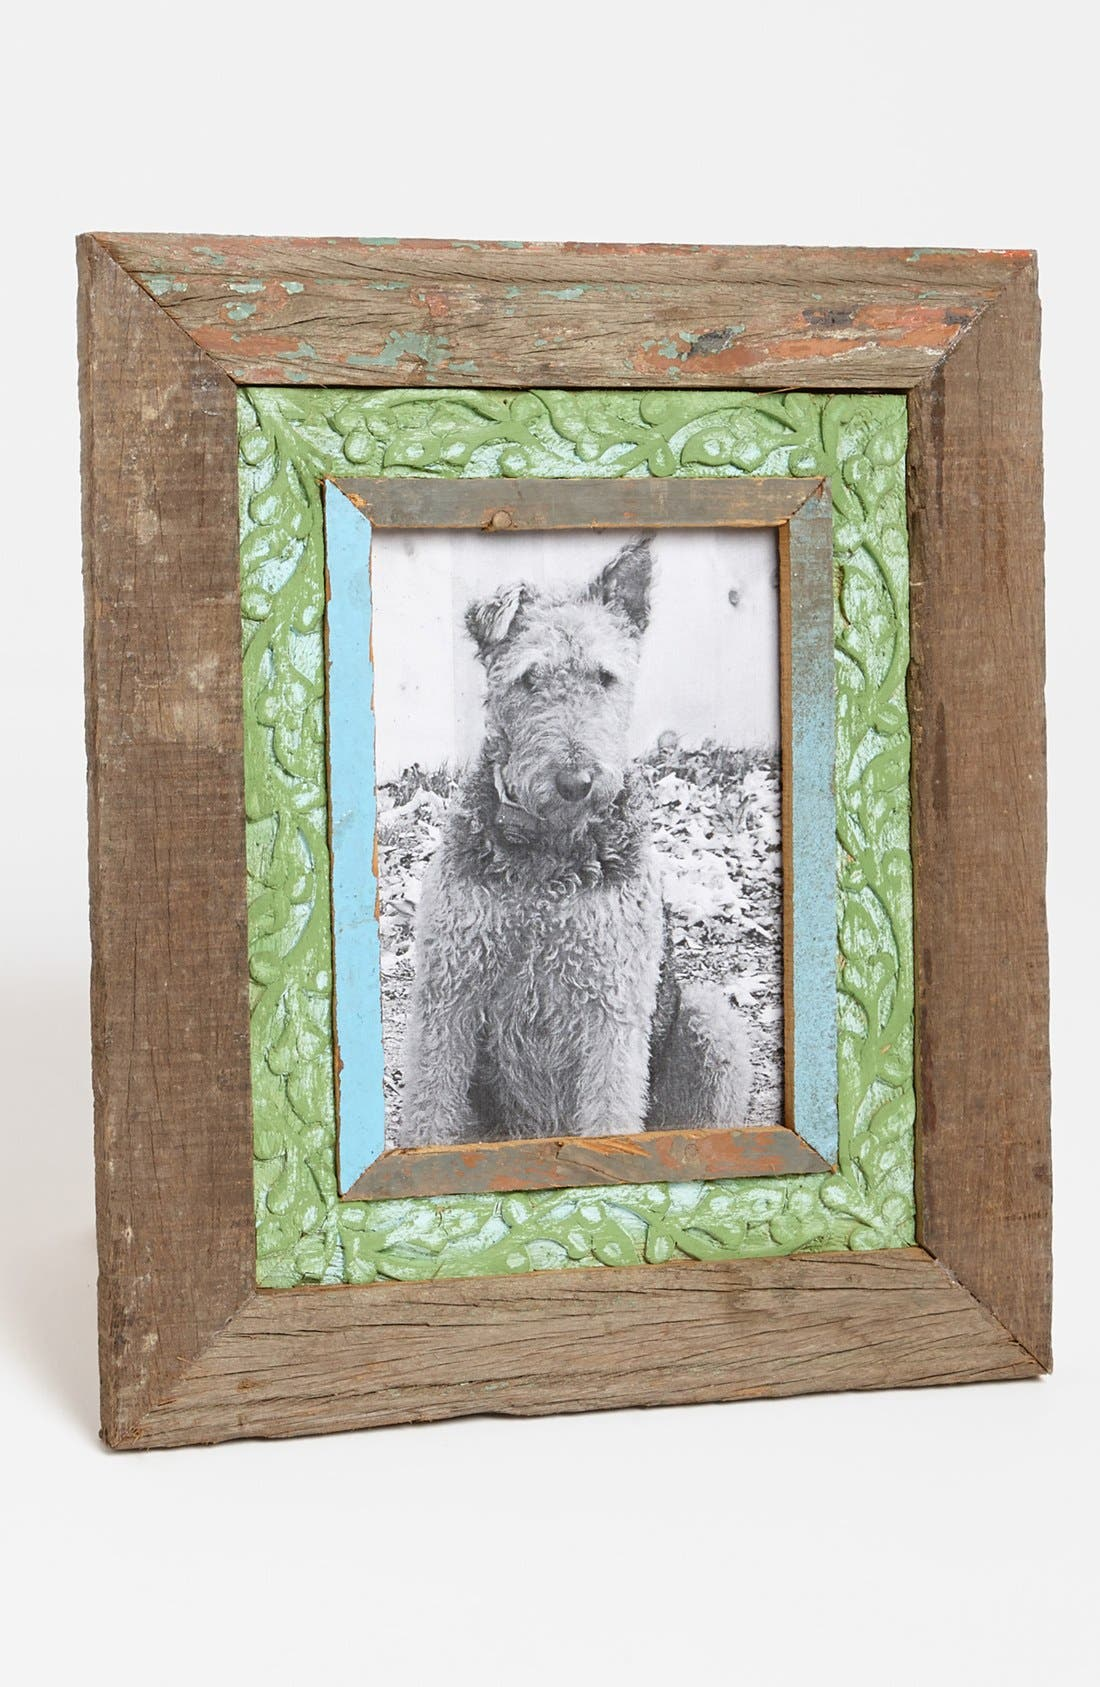 Alternate Image 1 Selected - Recycled Wood Picture Frame, Large (5x7)